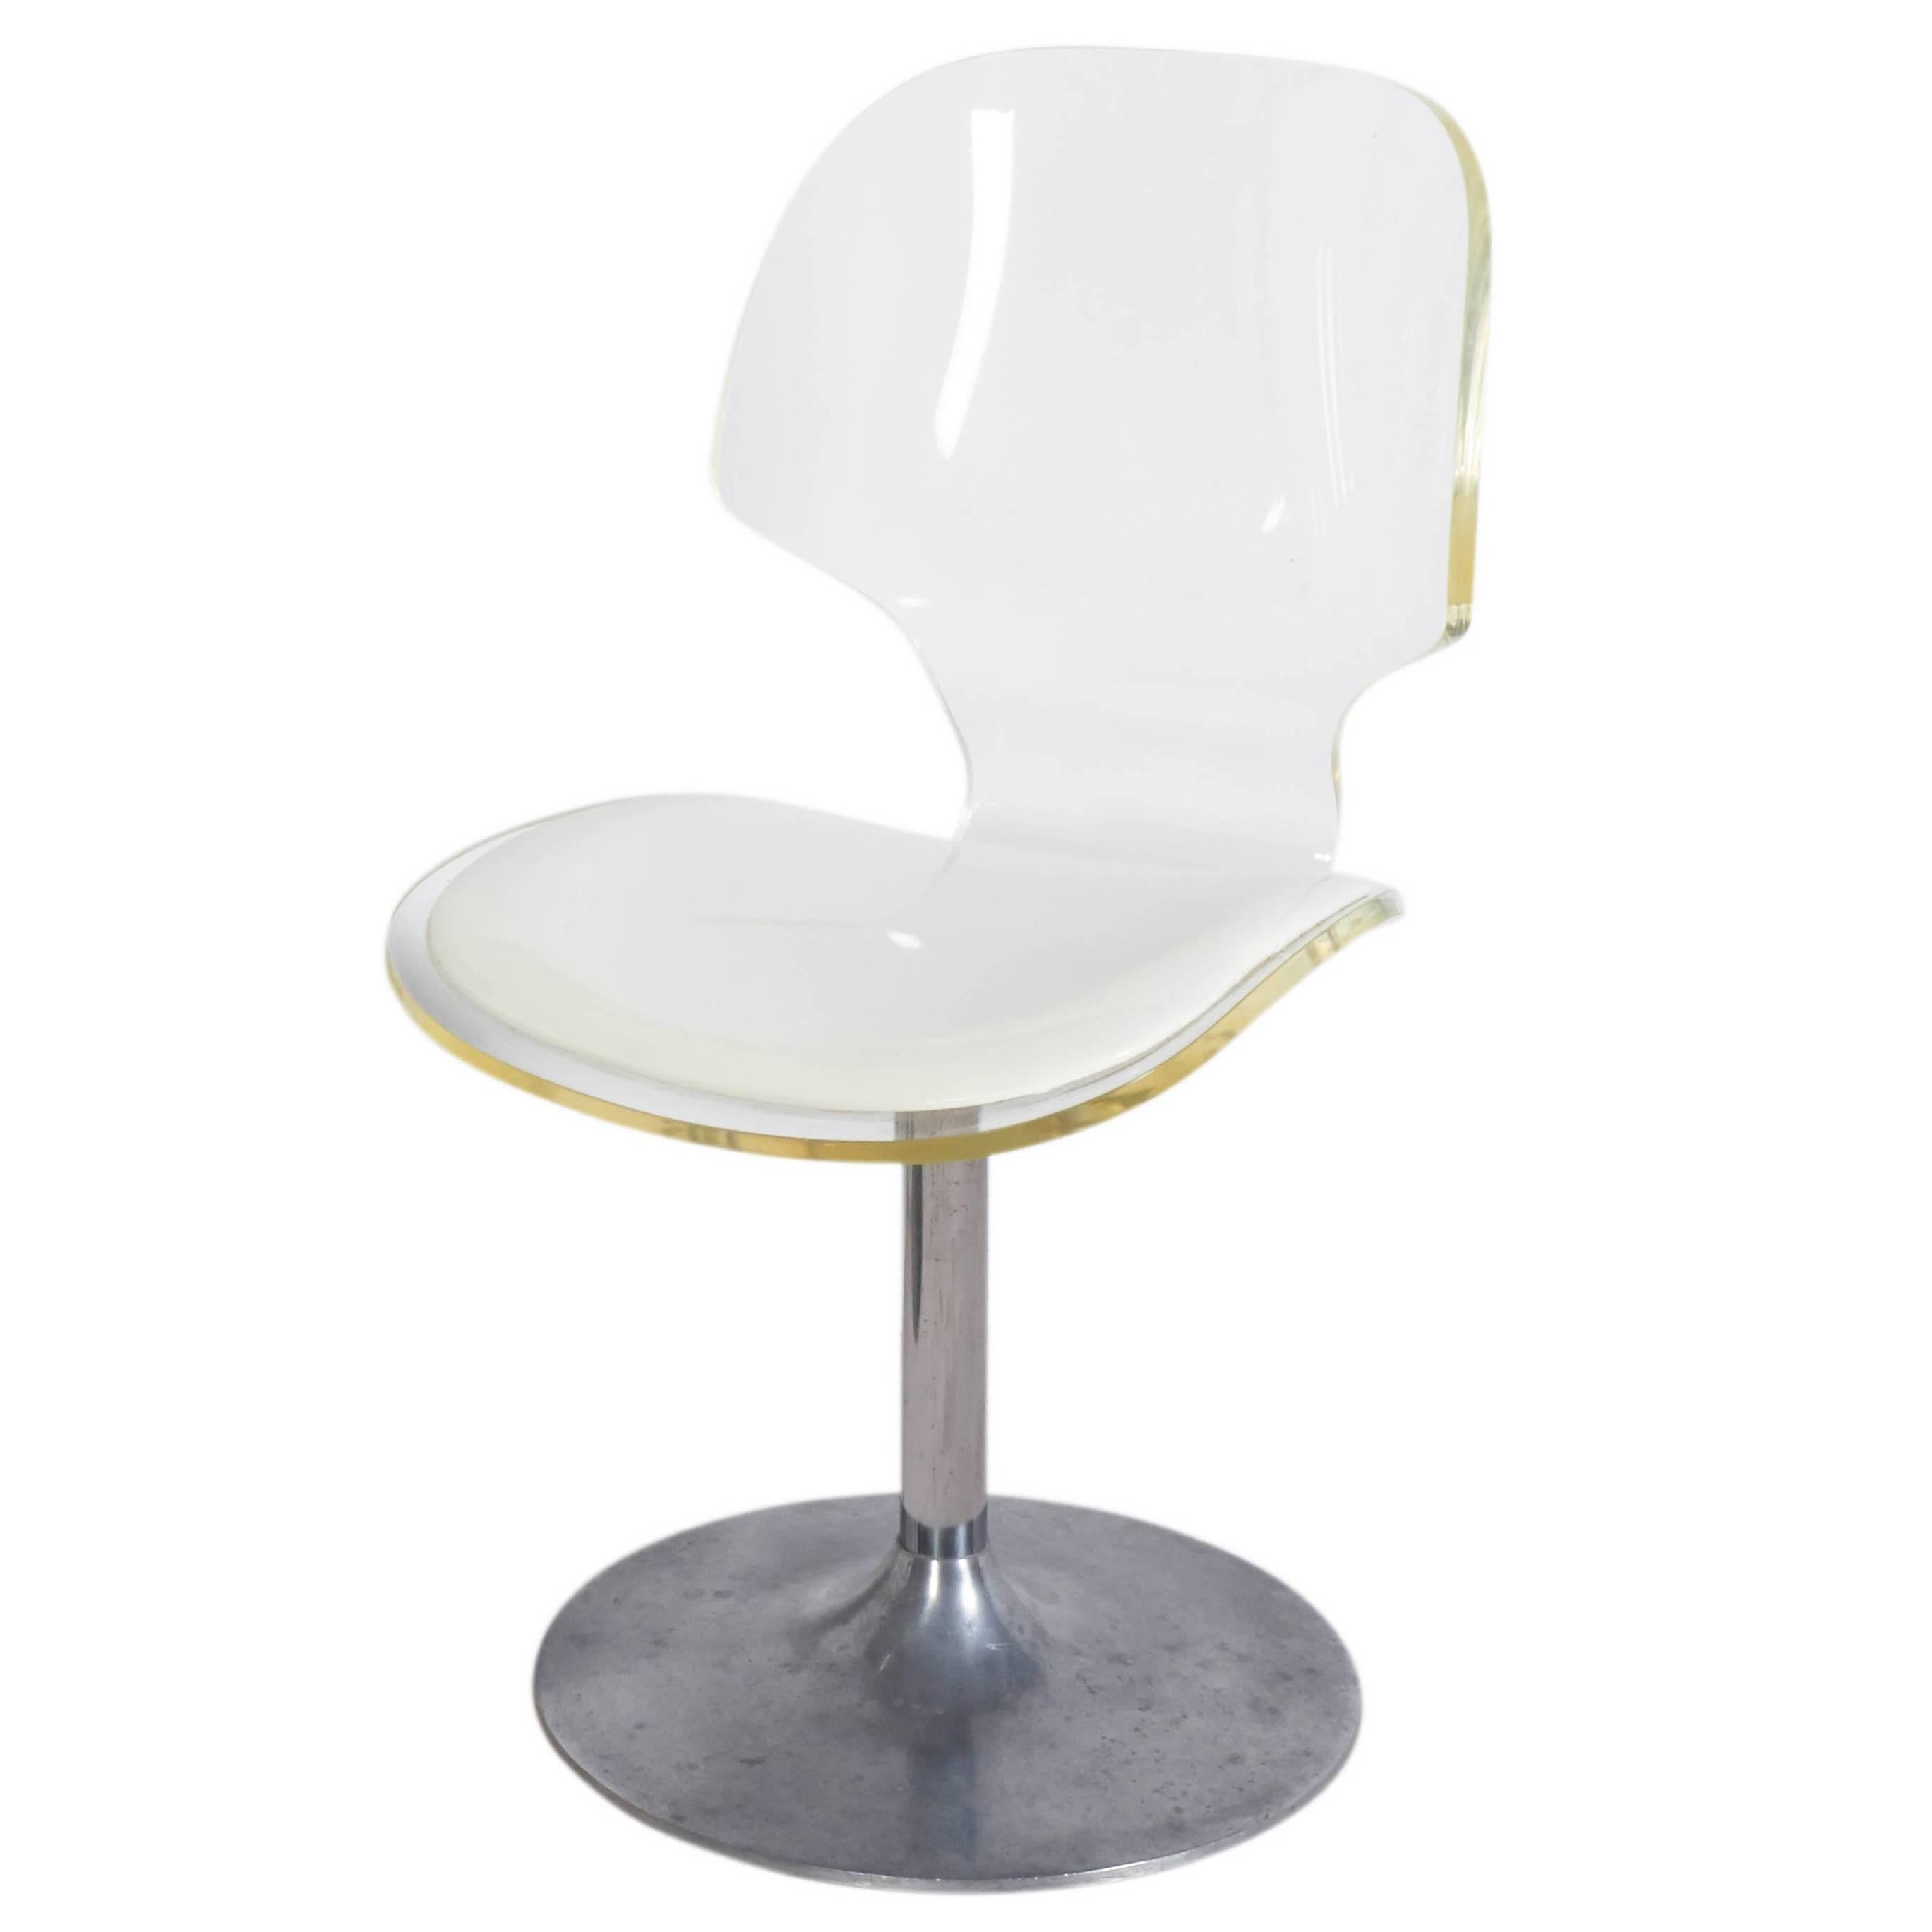 Lucite Chair Hill Manufacturing Lucite Chair On Aluminium Tulip Base